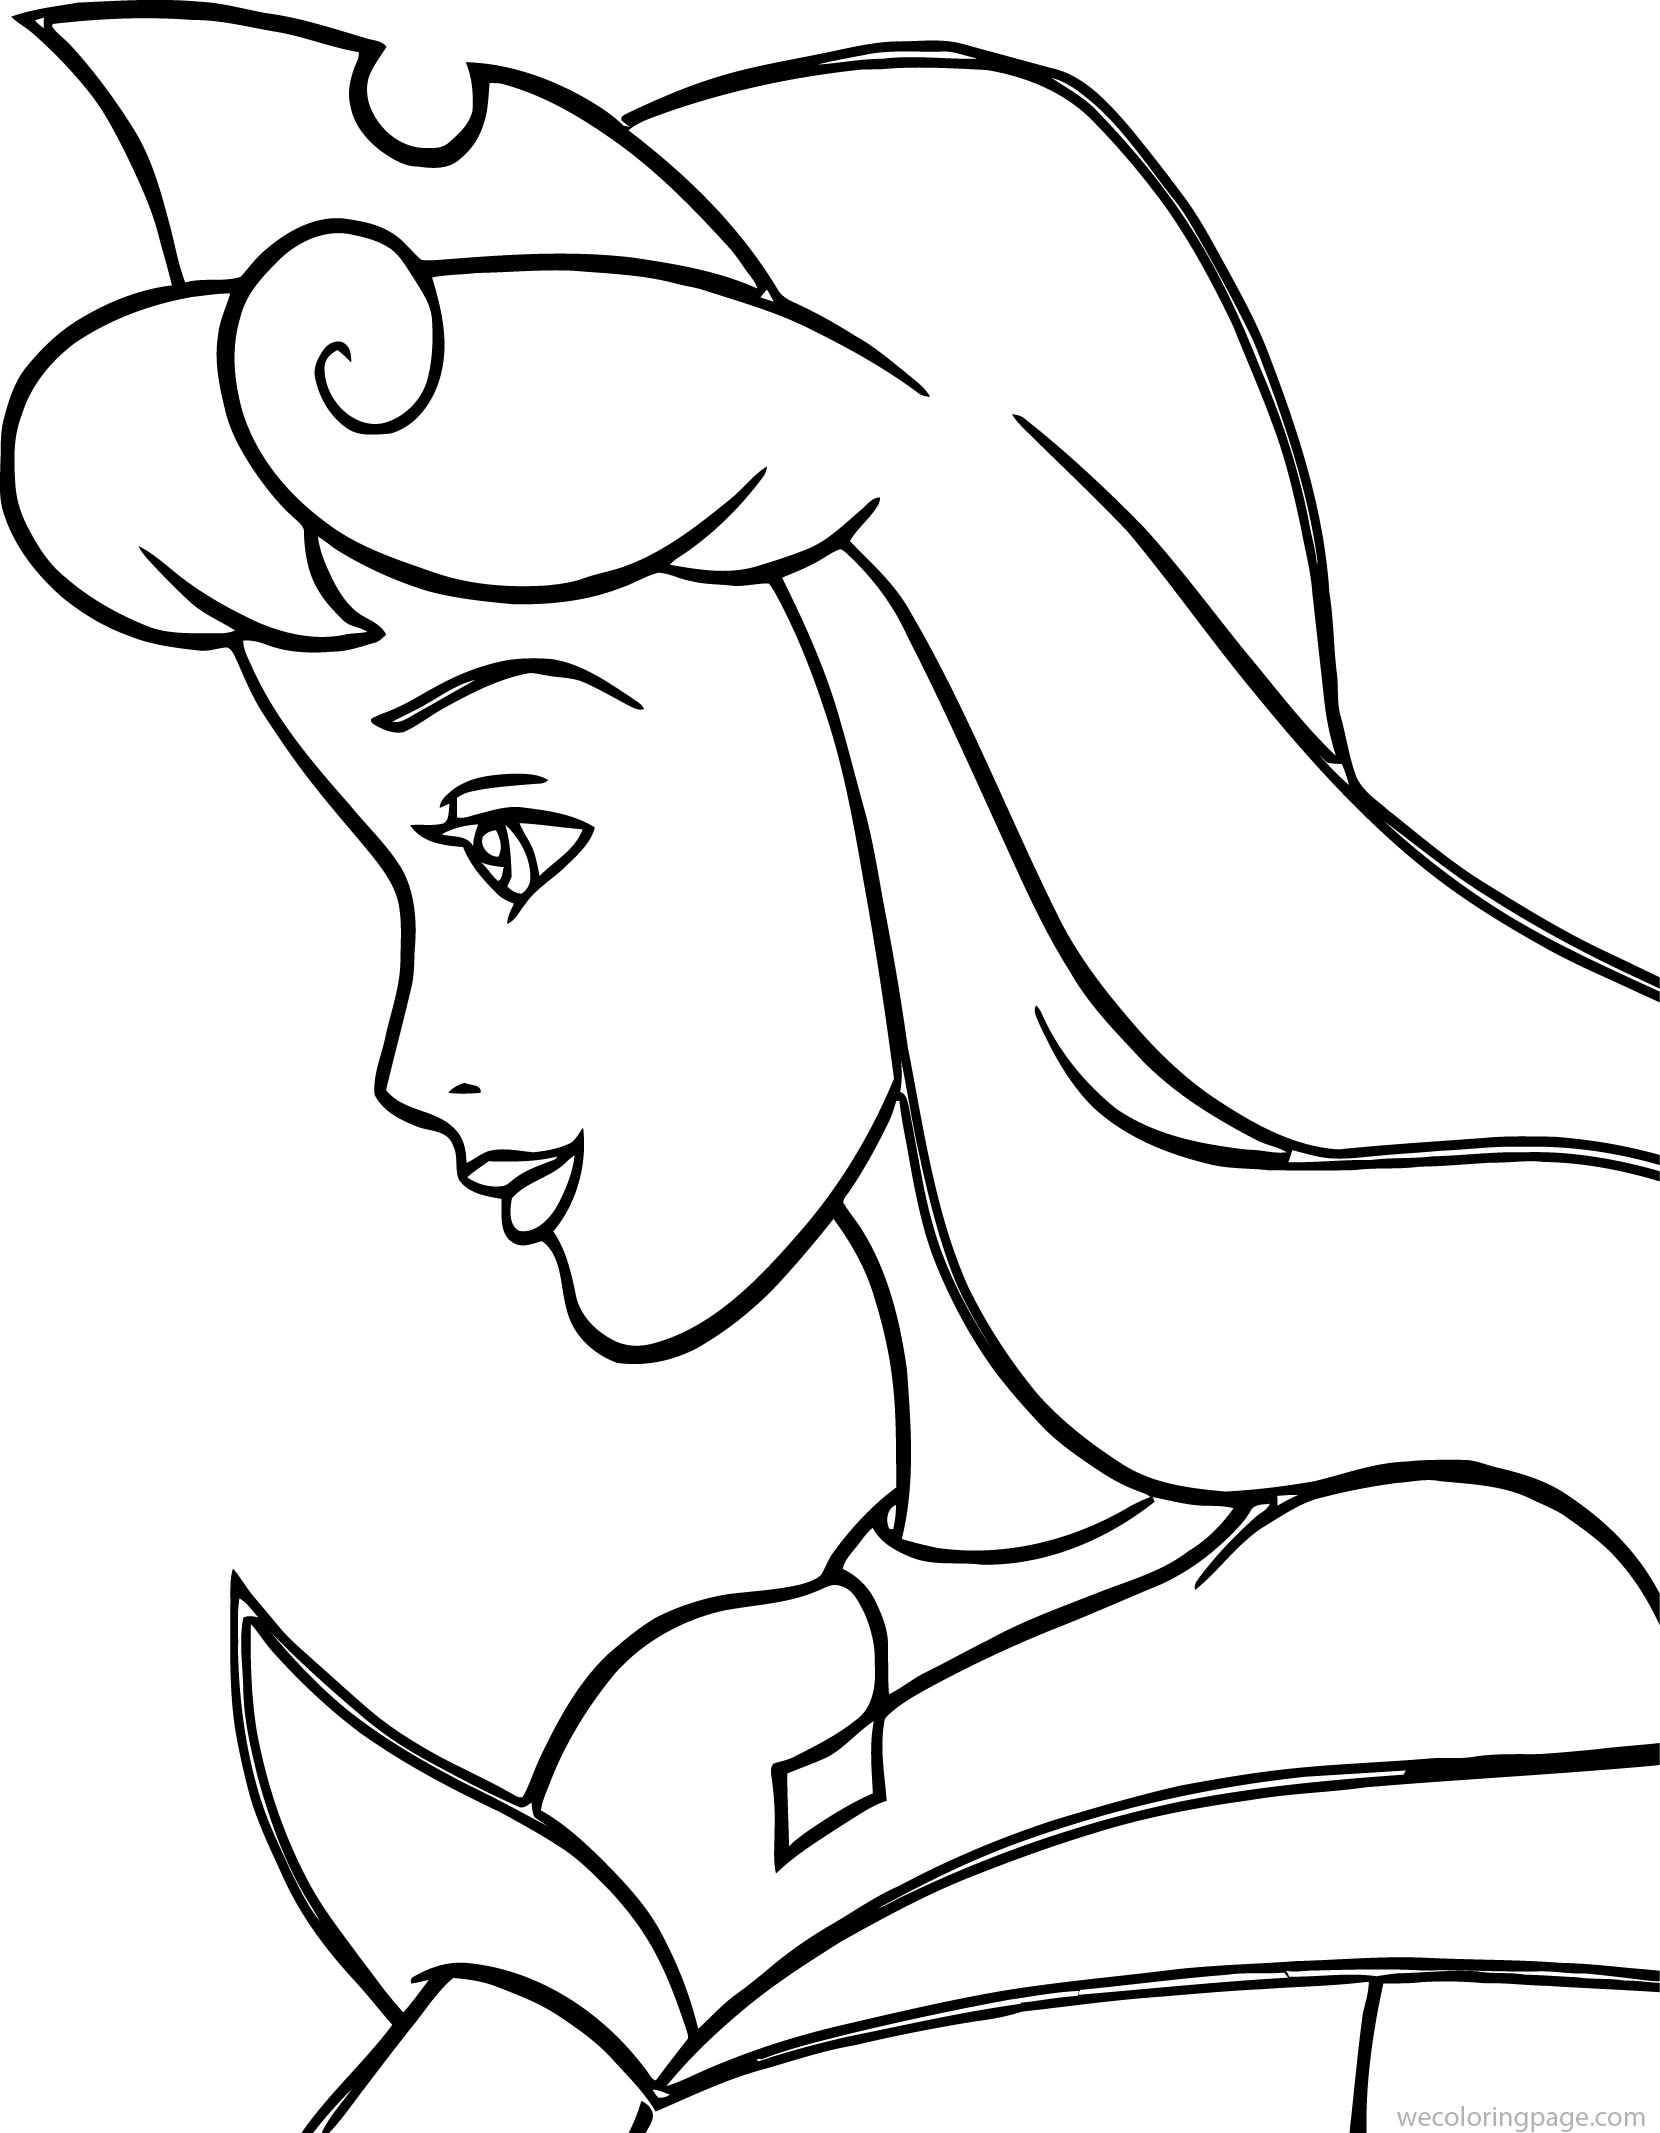 Disney Aurora Side Sleeping Beauty At Coloring Pages 30